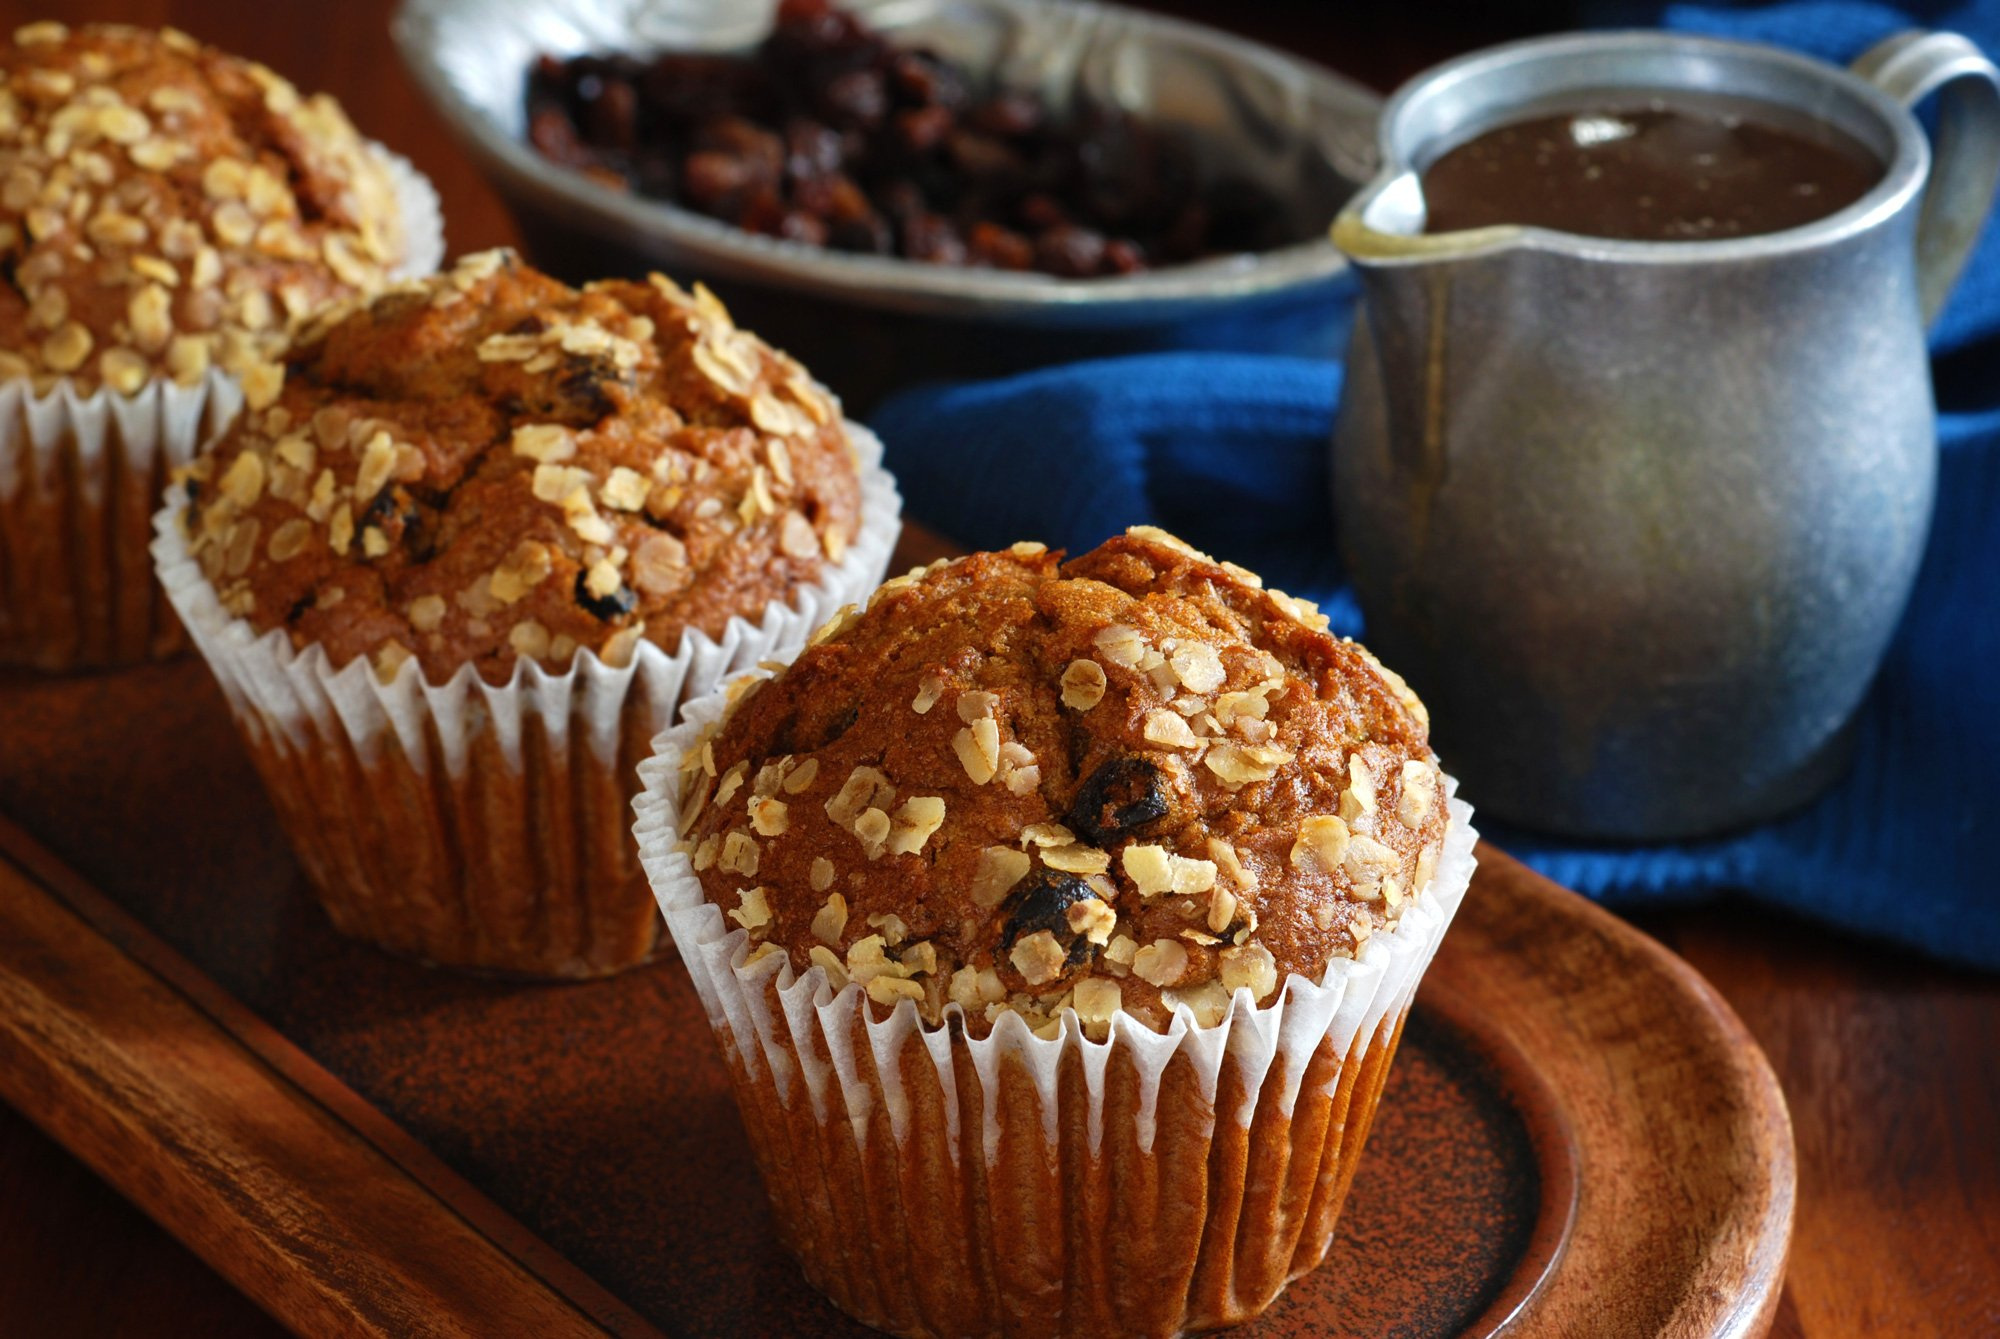 Josef's Healthy Choice Muffins